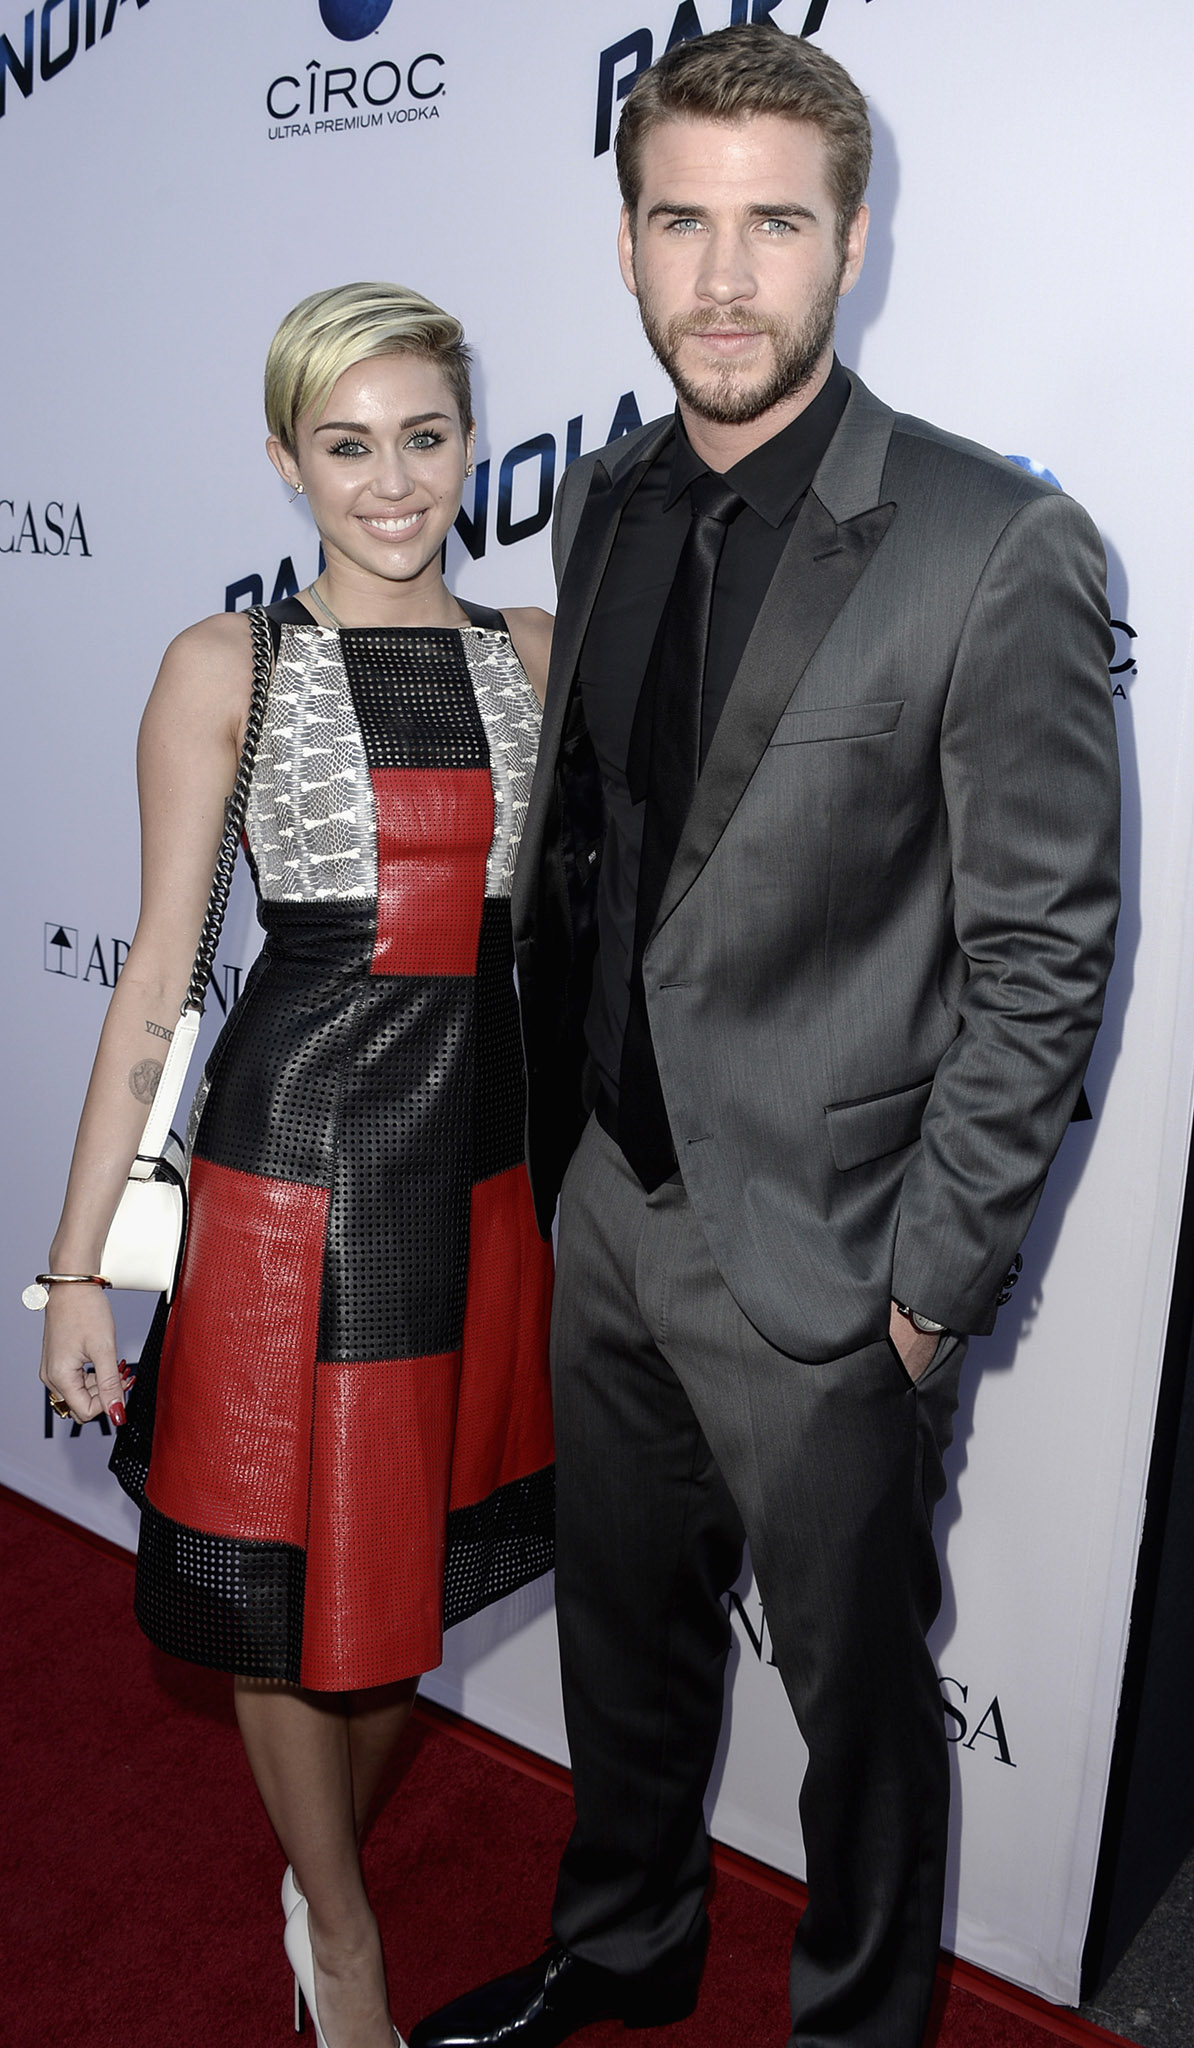 Miley Cyrus attends the 'Paranoia' premiere with Liam Hemsworth (Getty Images)